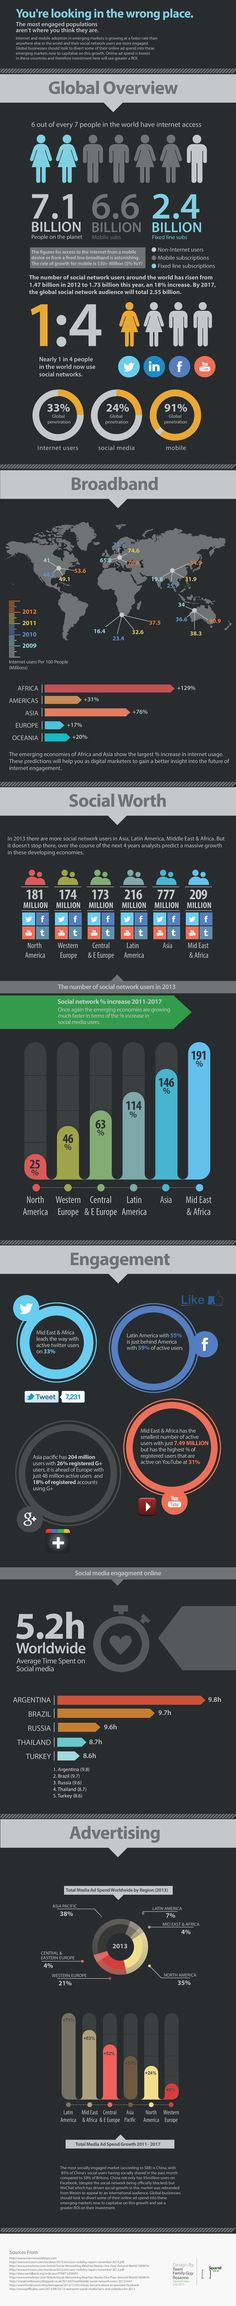 Social Media Audiences and Engagement